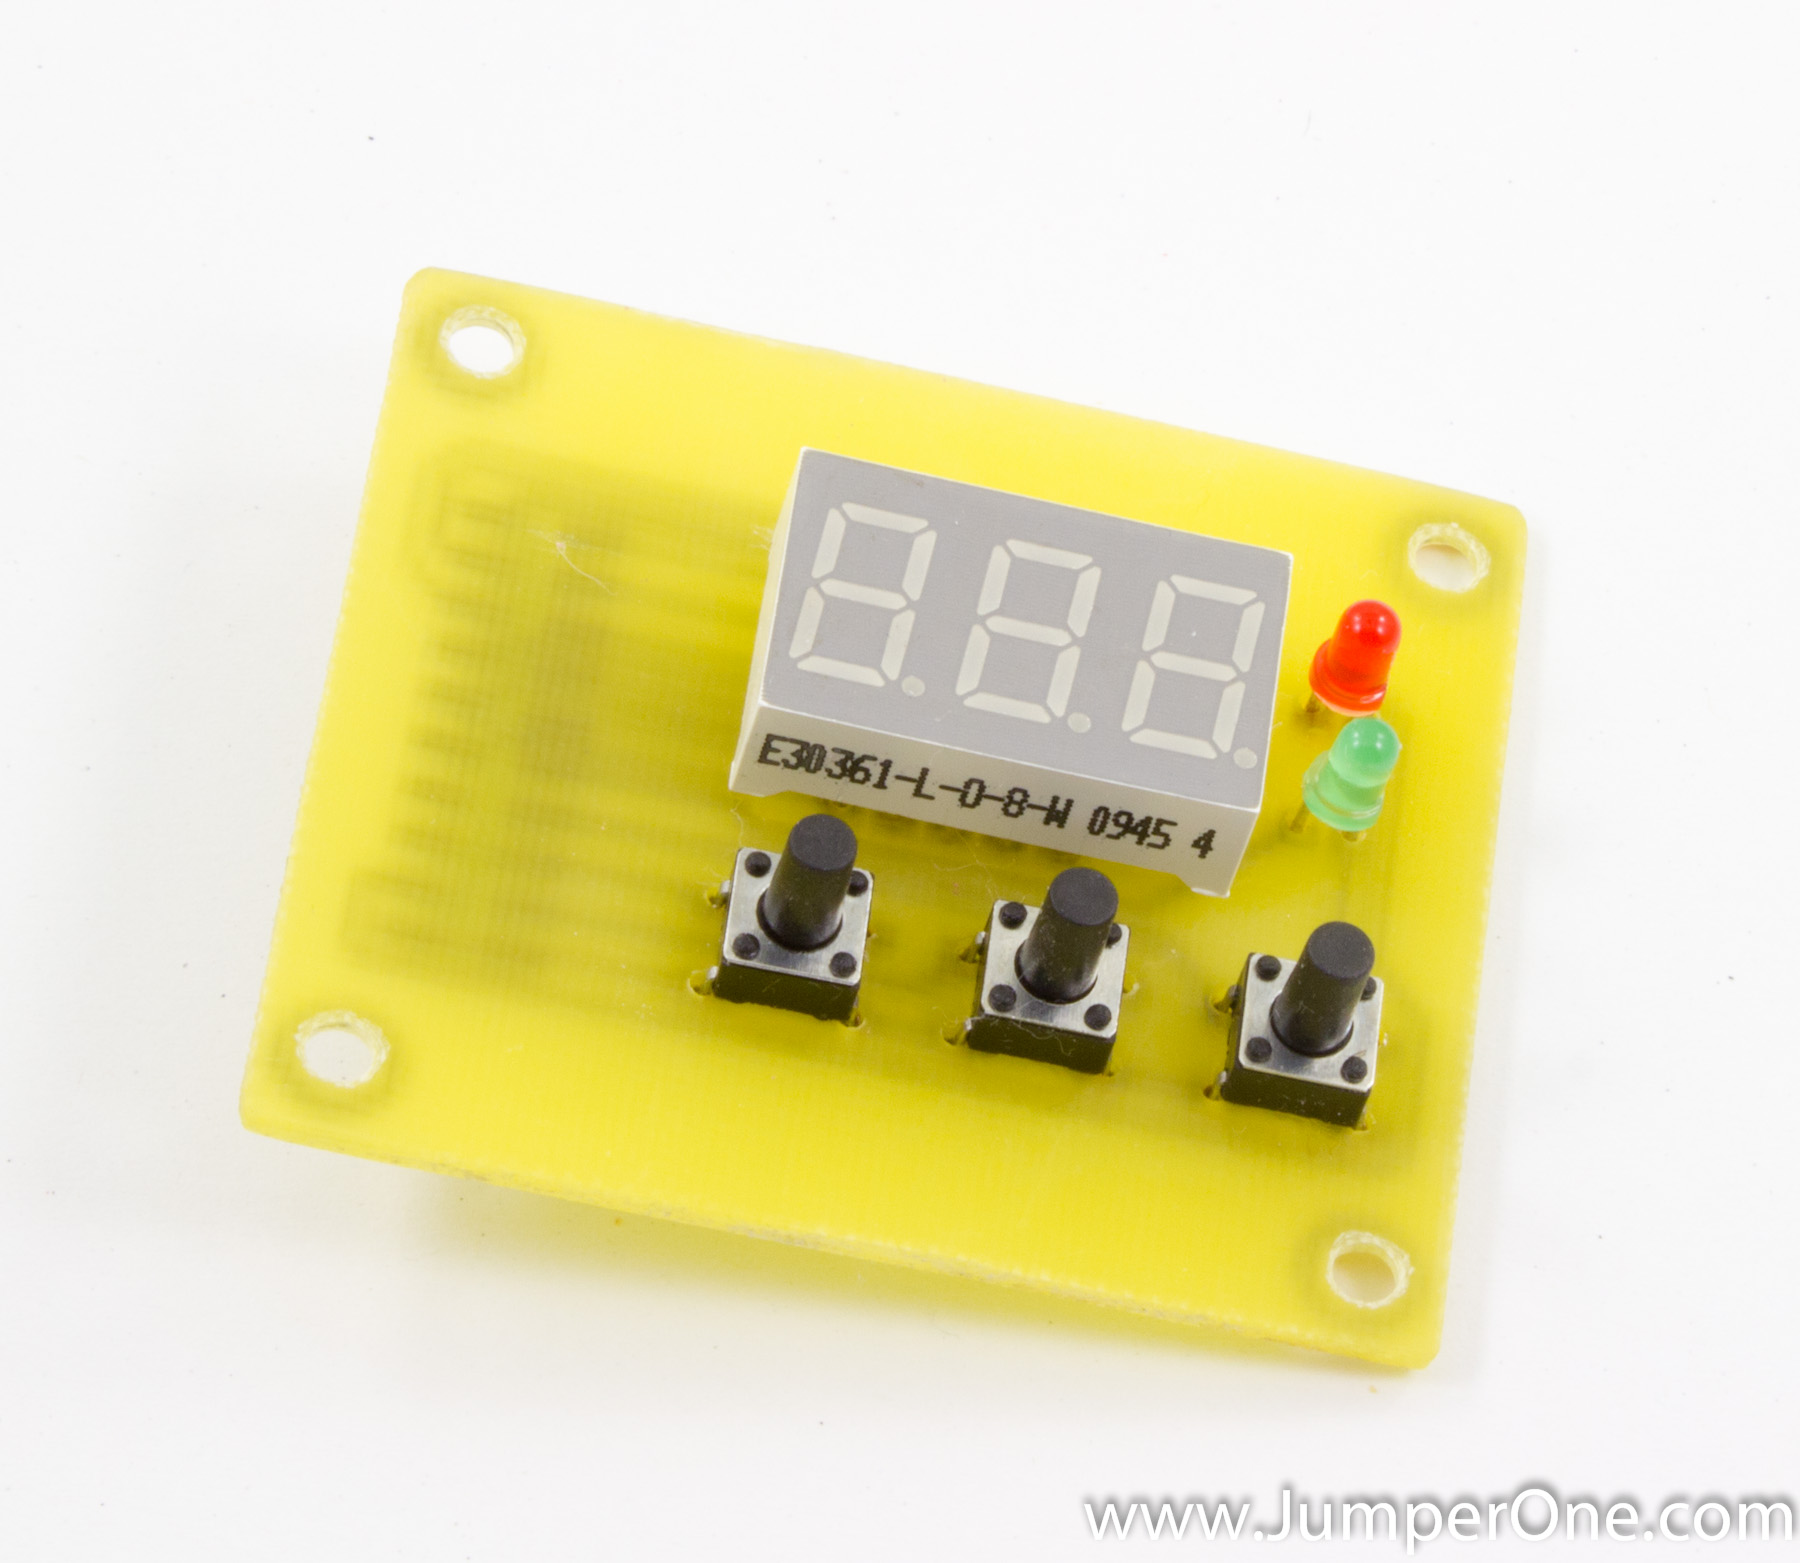 Attiny2313 Based Thermostat Project Part 2 Jumper One Delay Relay Timer Circuit Electronic Projects And